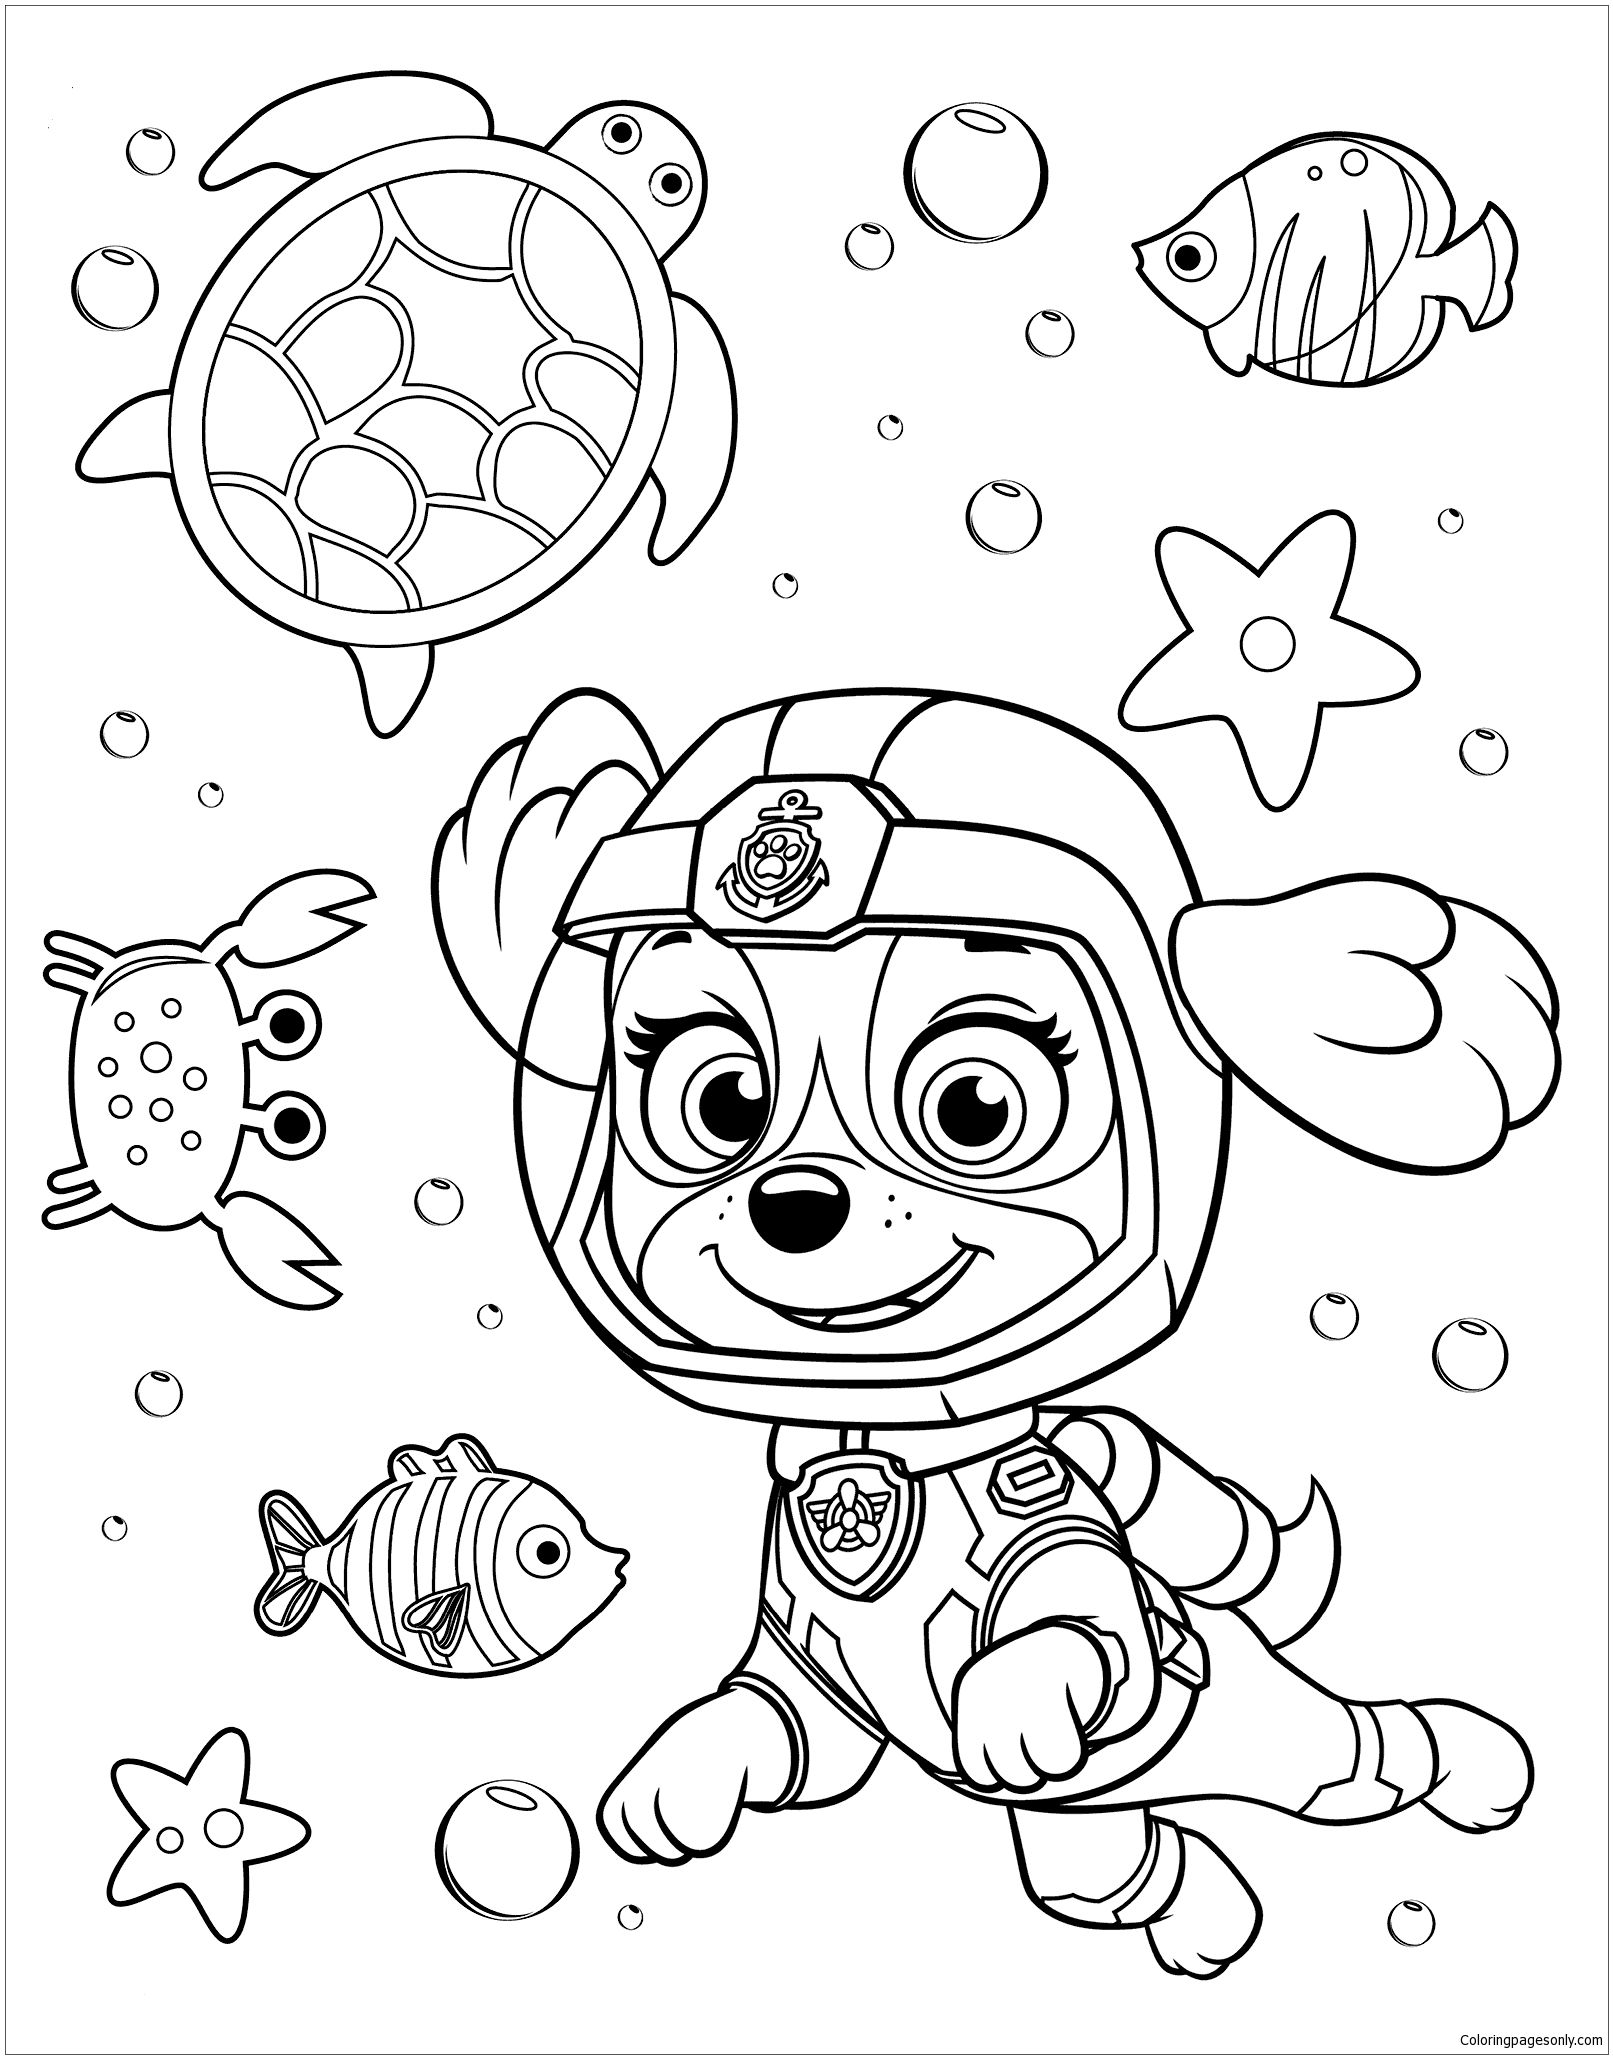 Paw Patrol Rubble Underwater 2 Coloring Page Paw Patrol Coloring